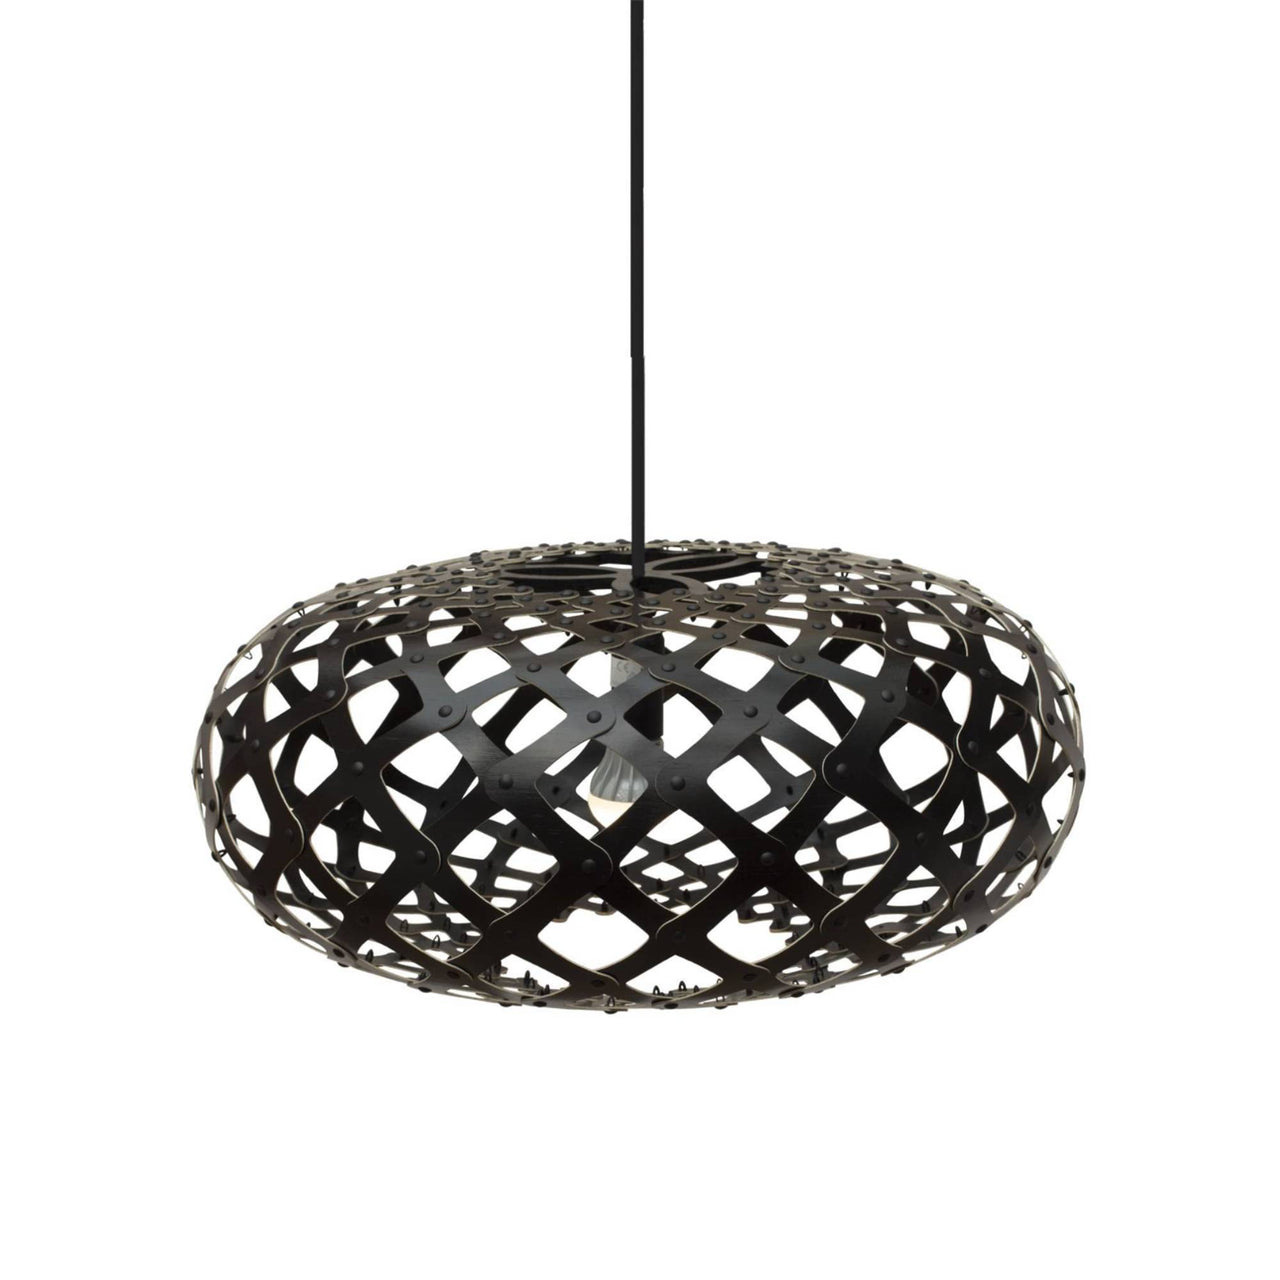 Kina Pendant Light: 440 + Black Two Sides